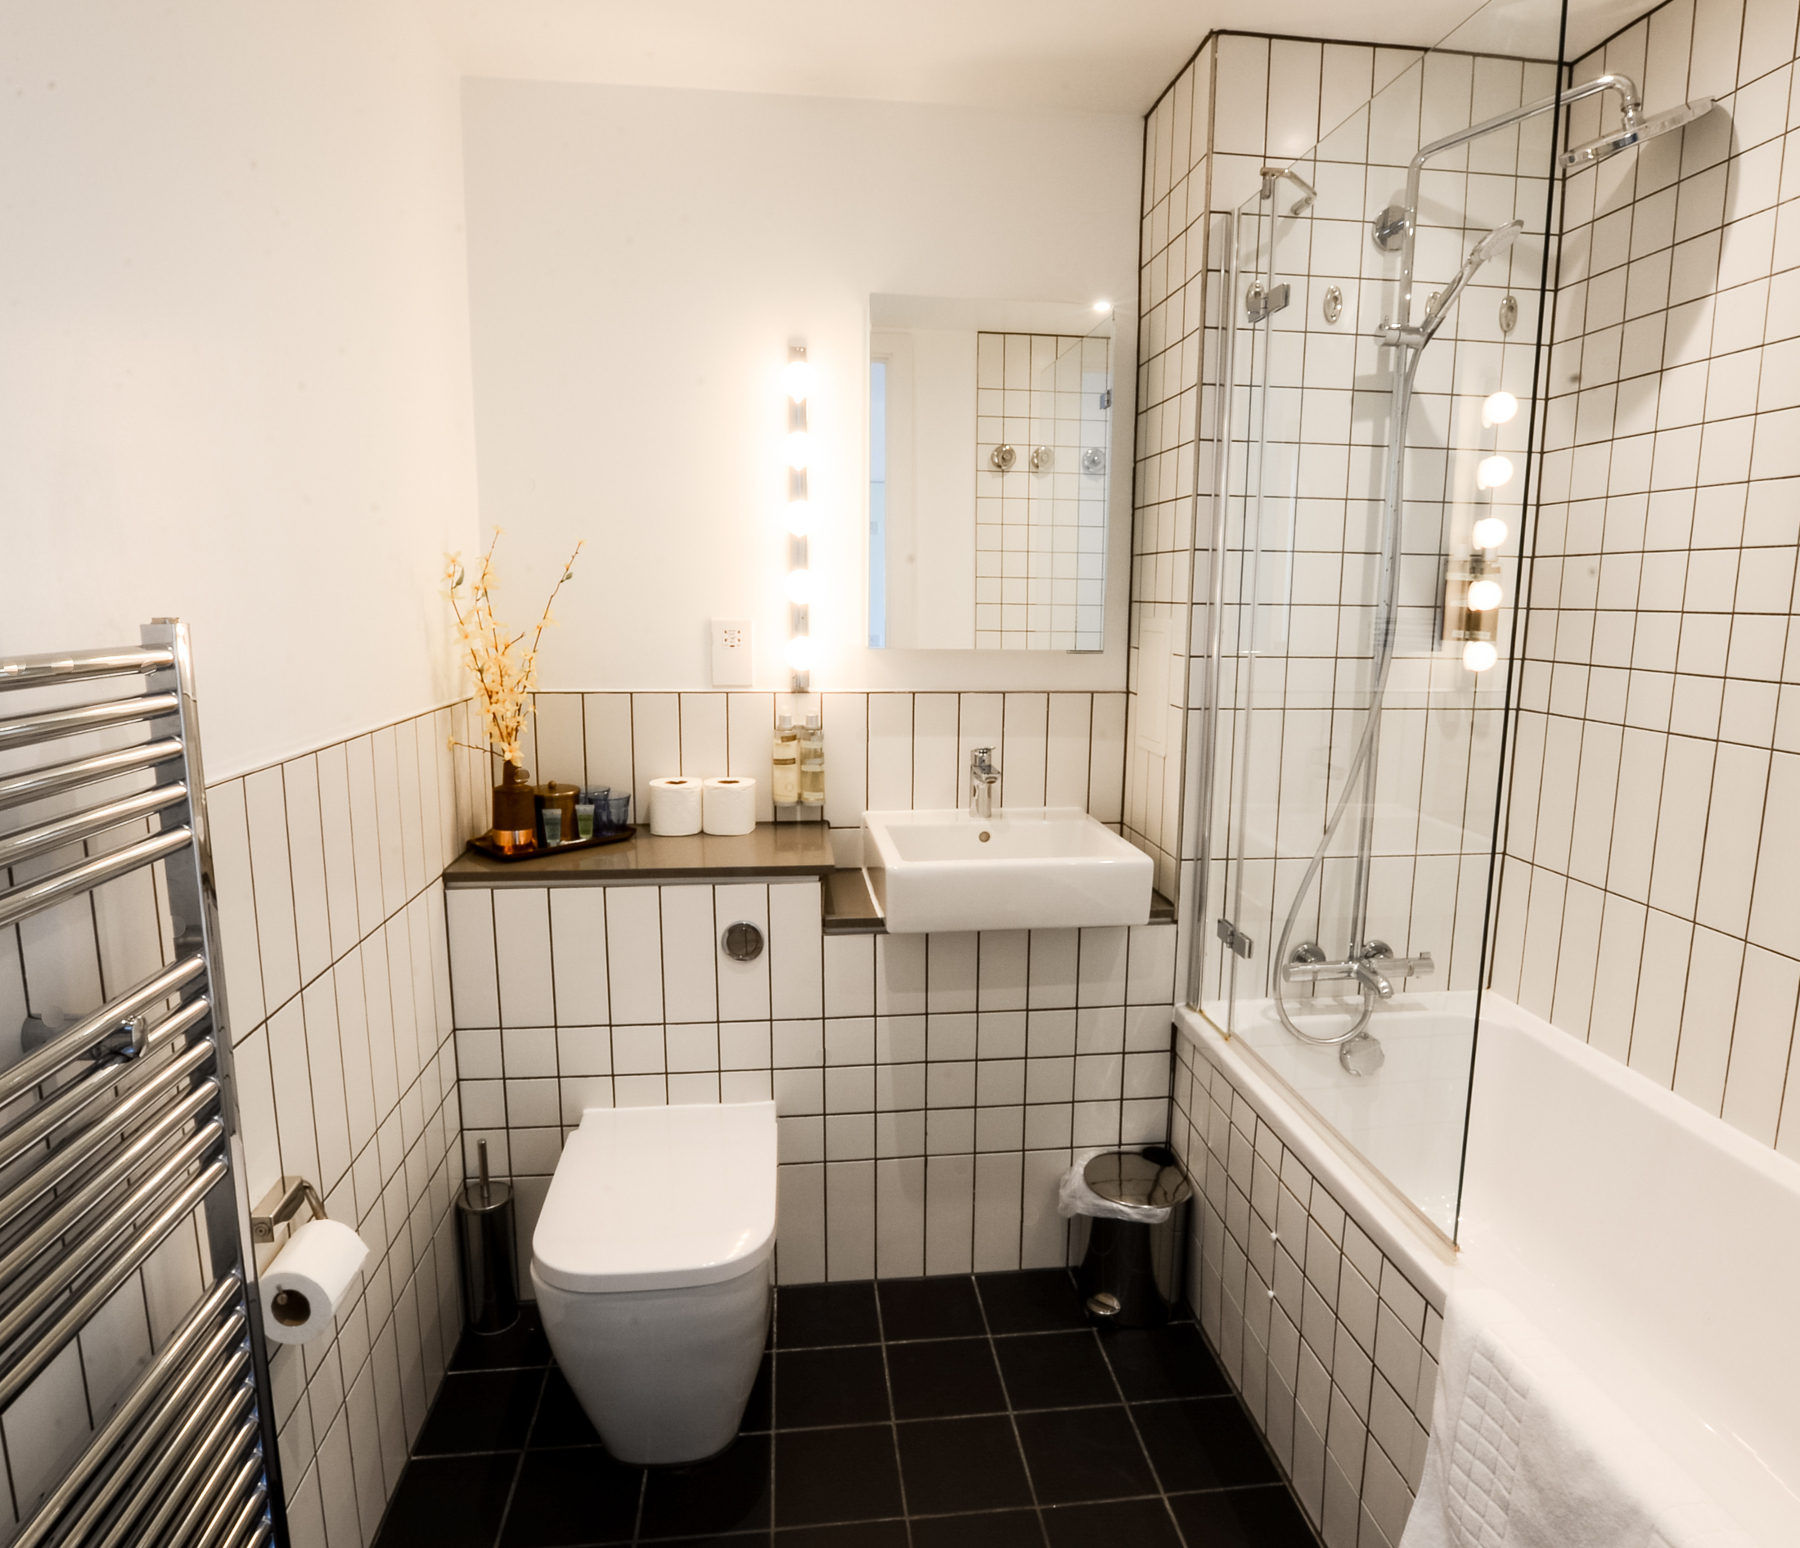 Bathroom at Millharbour Apartments, Isle of Dogs, London - Citybase Apartments